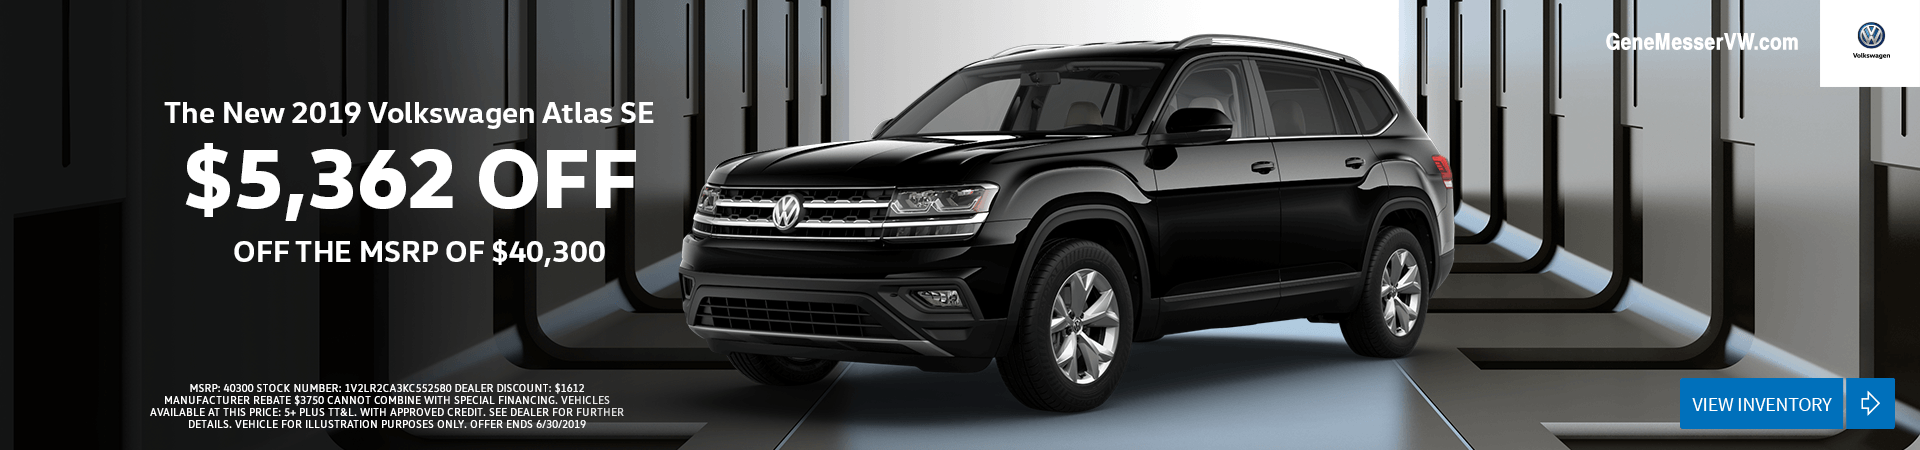 vw-2019-atlas-lubbock-tx